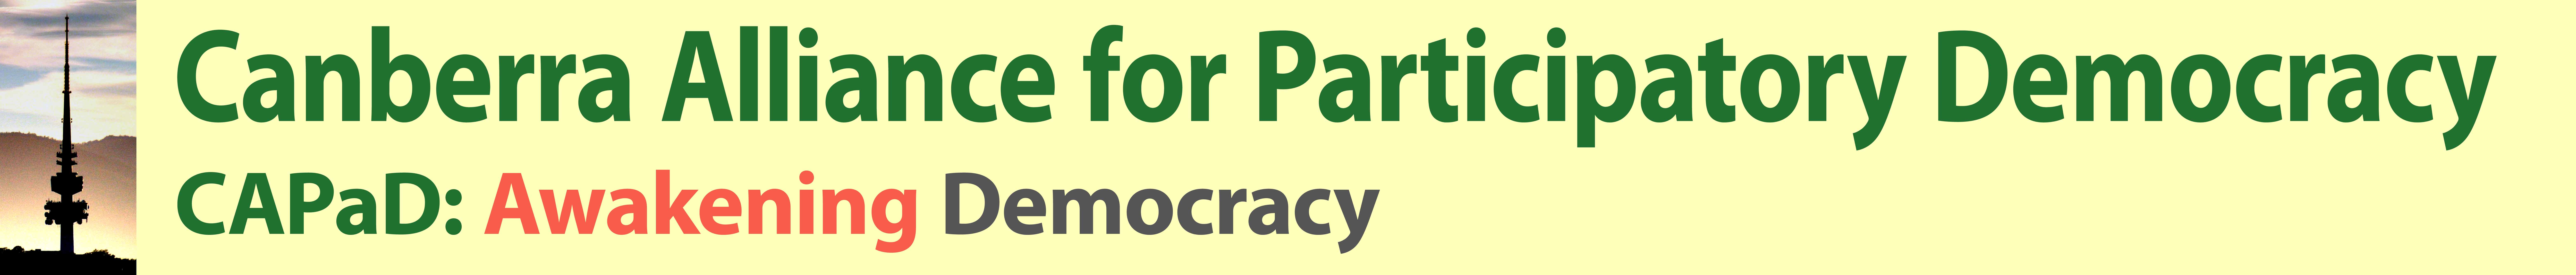 Canberra Alliance for Participatory Democracy